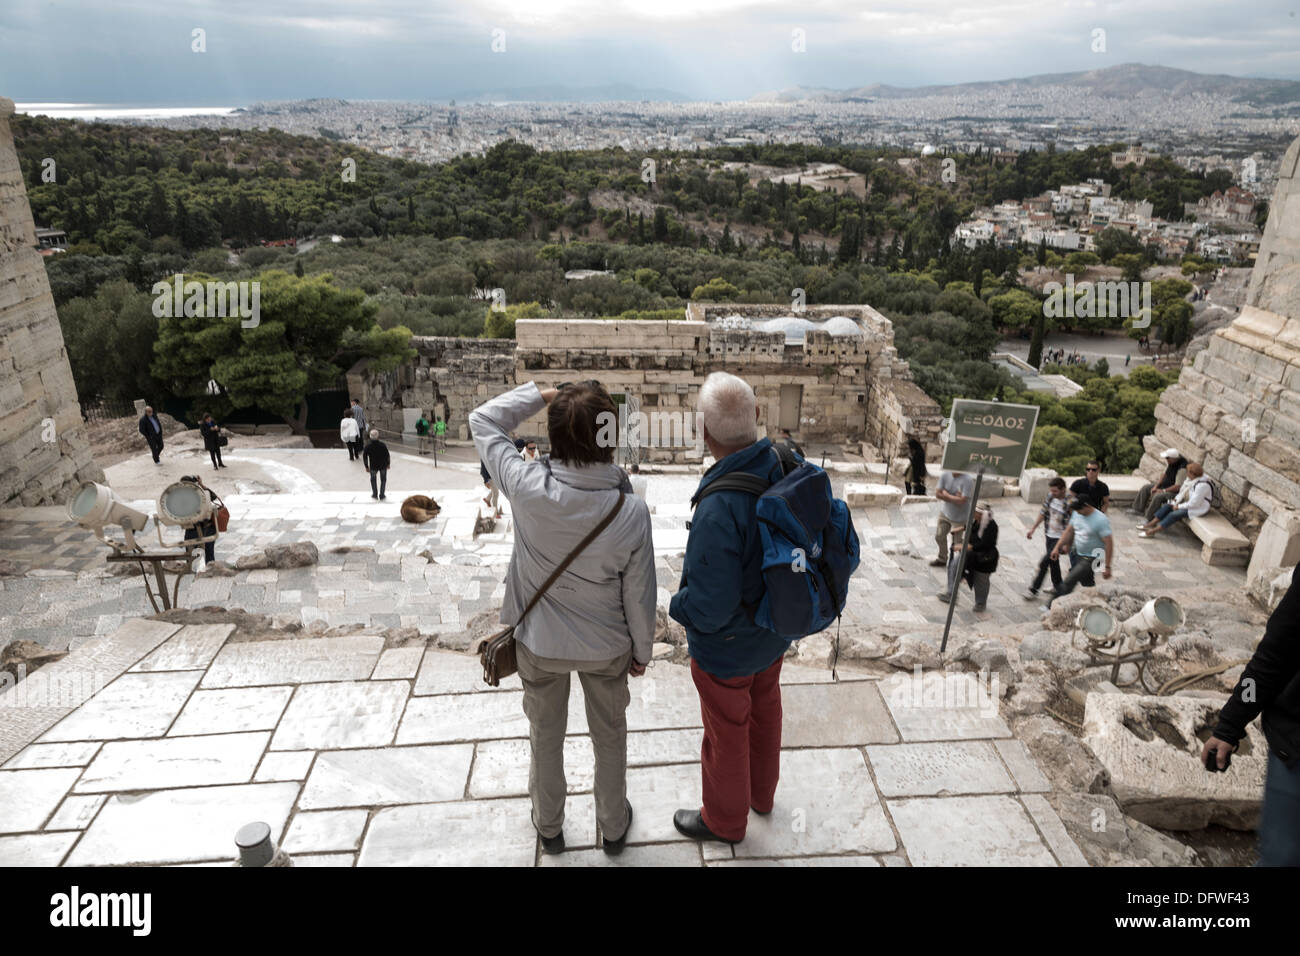 Tourists on the Acropolis. Athens, Greece on October 4, 2013 - Stock Image